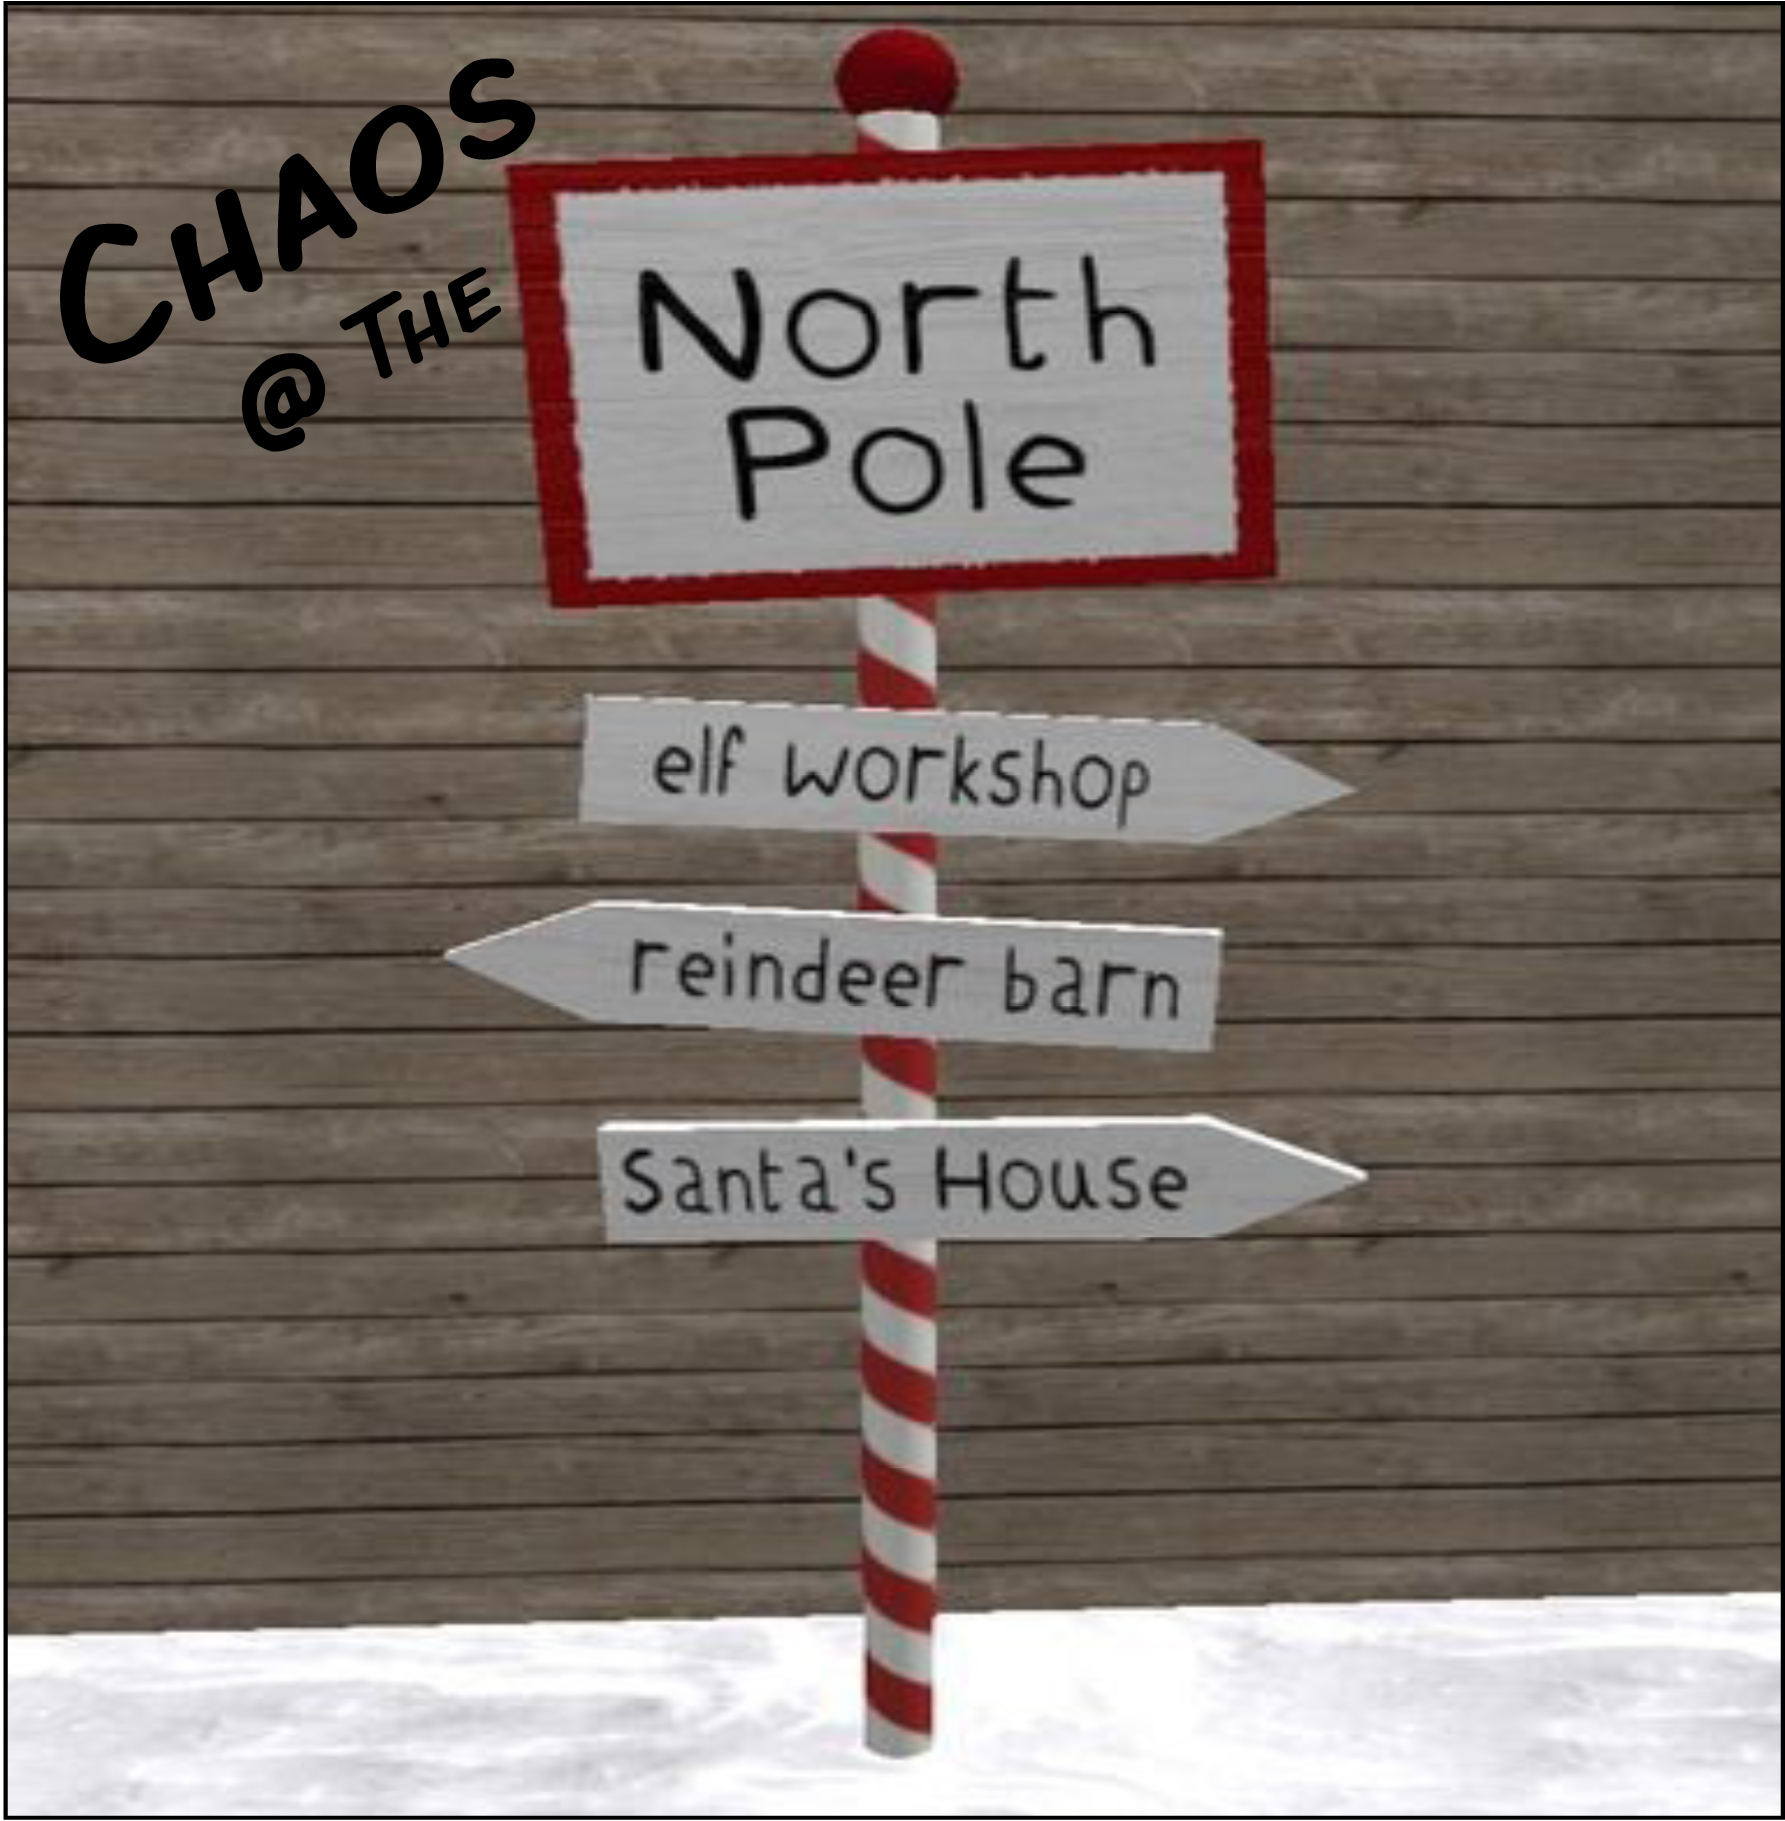 Chaos at the North Pole